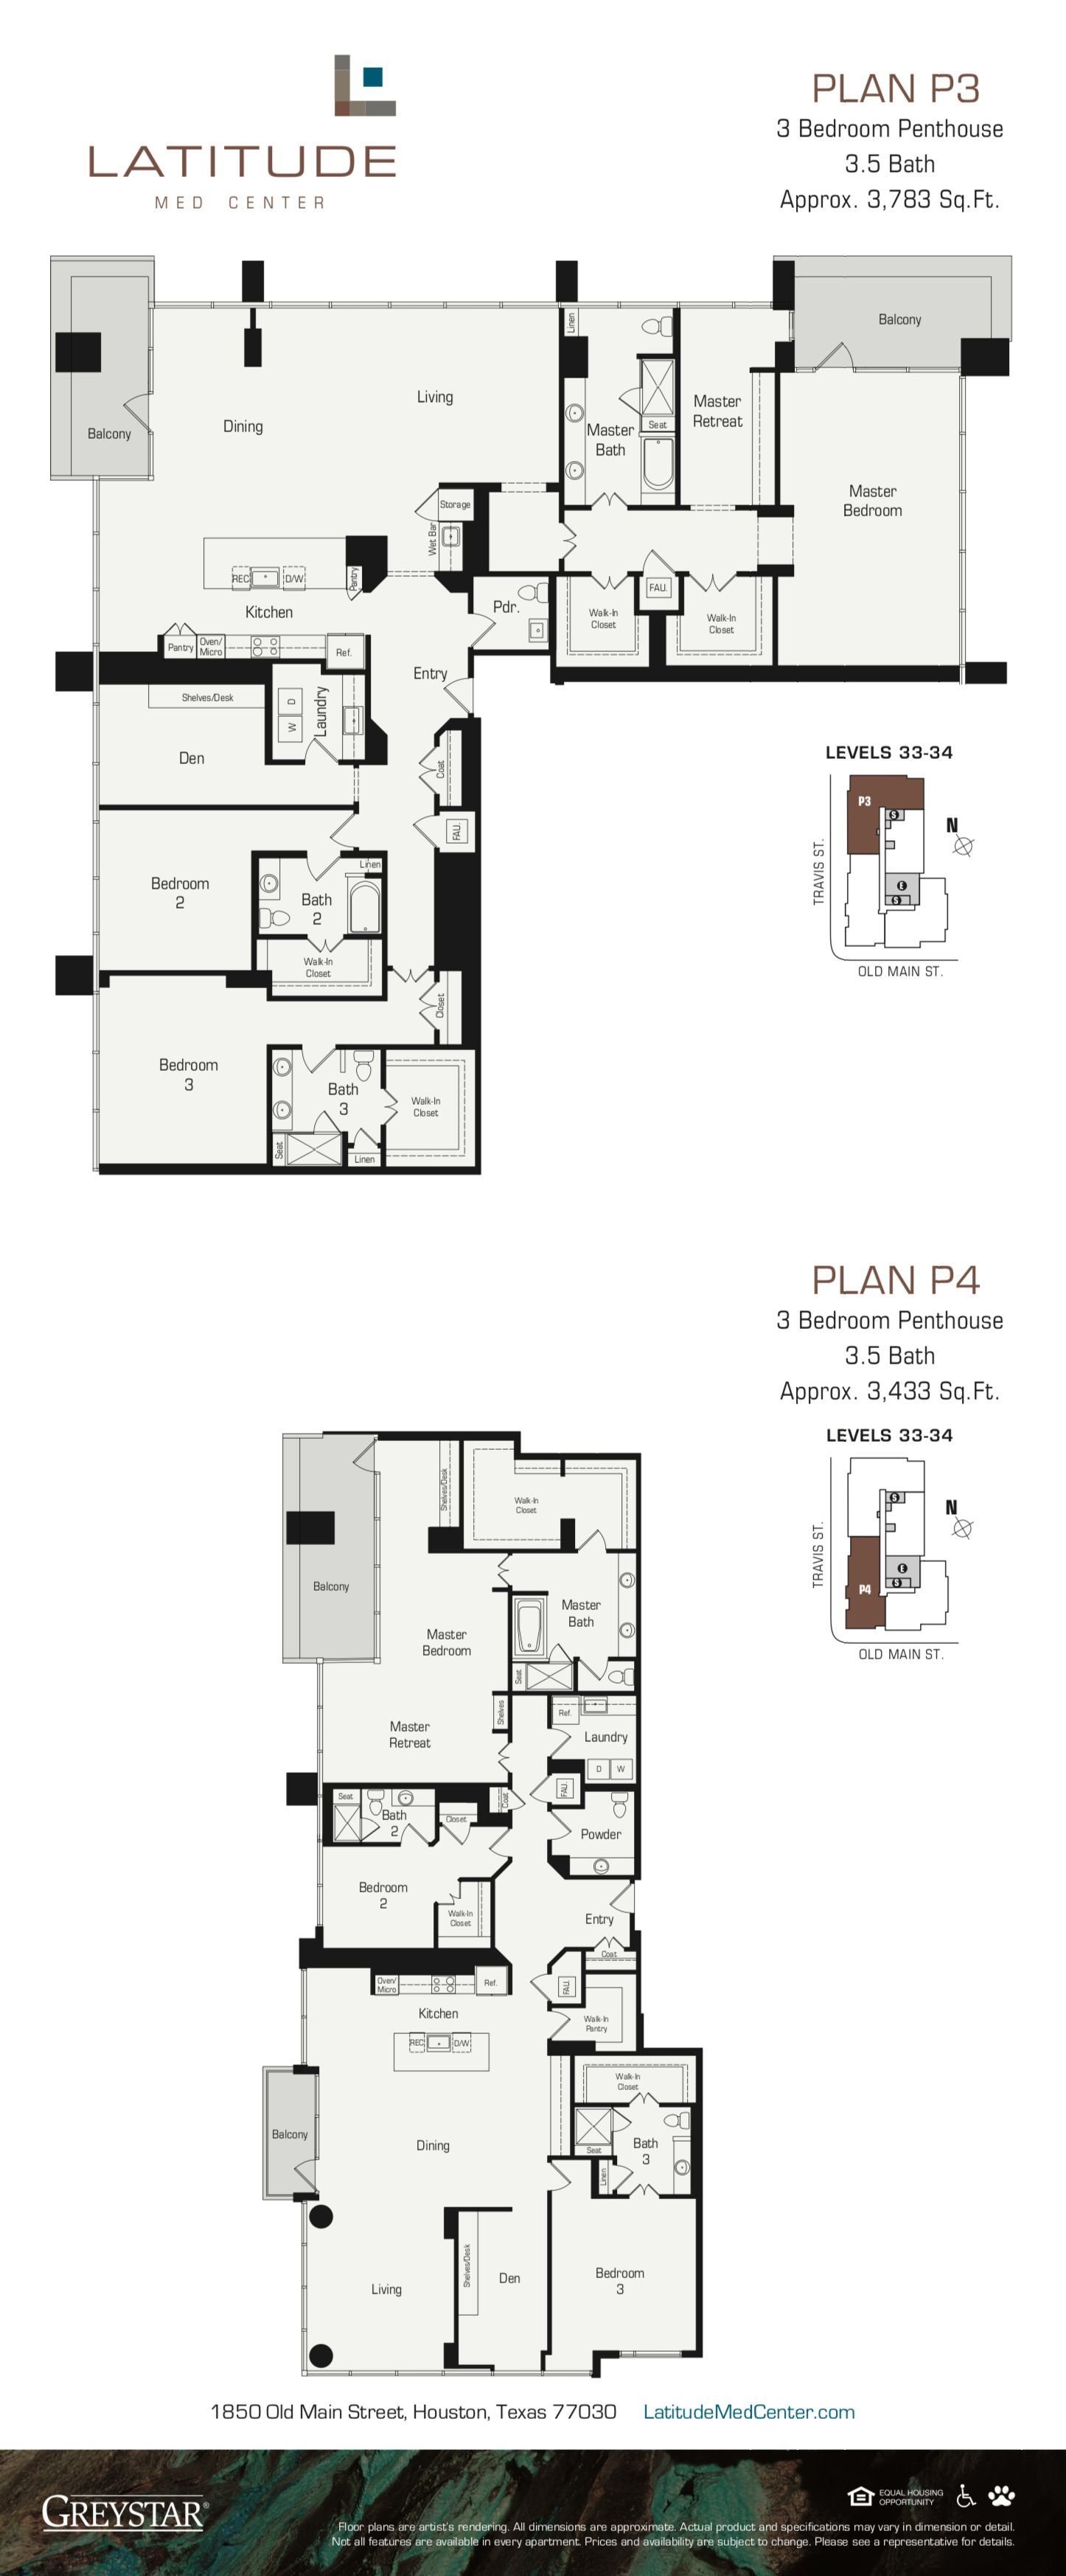 I Know It S An Apartment Floor Plan But The L Shaped One Appeals To Me For Some Reason You Could Pu Apartment Floor Plans Condominium Floor Plan Floor Plans